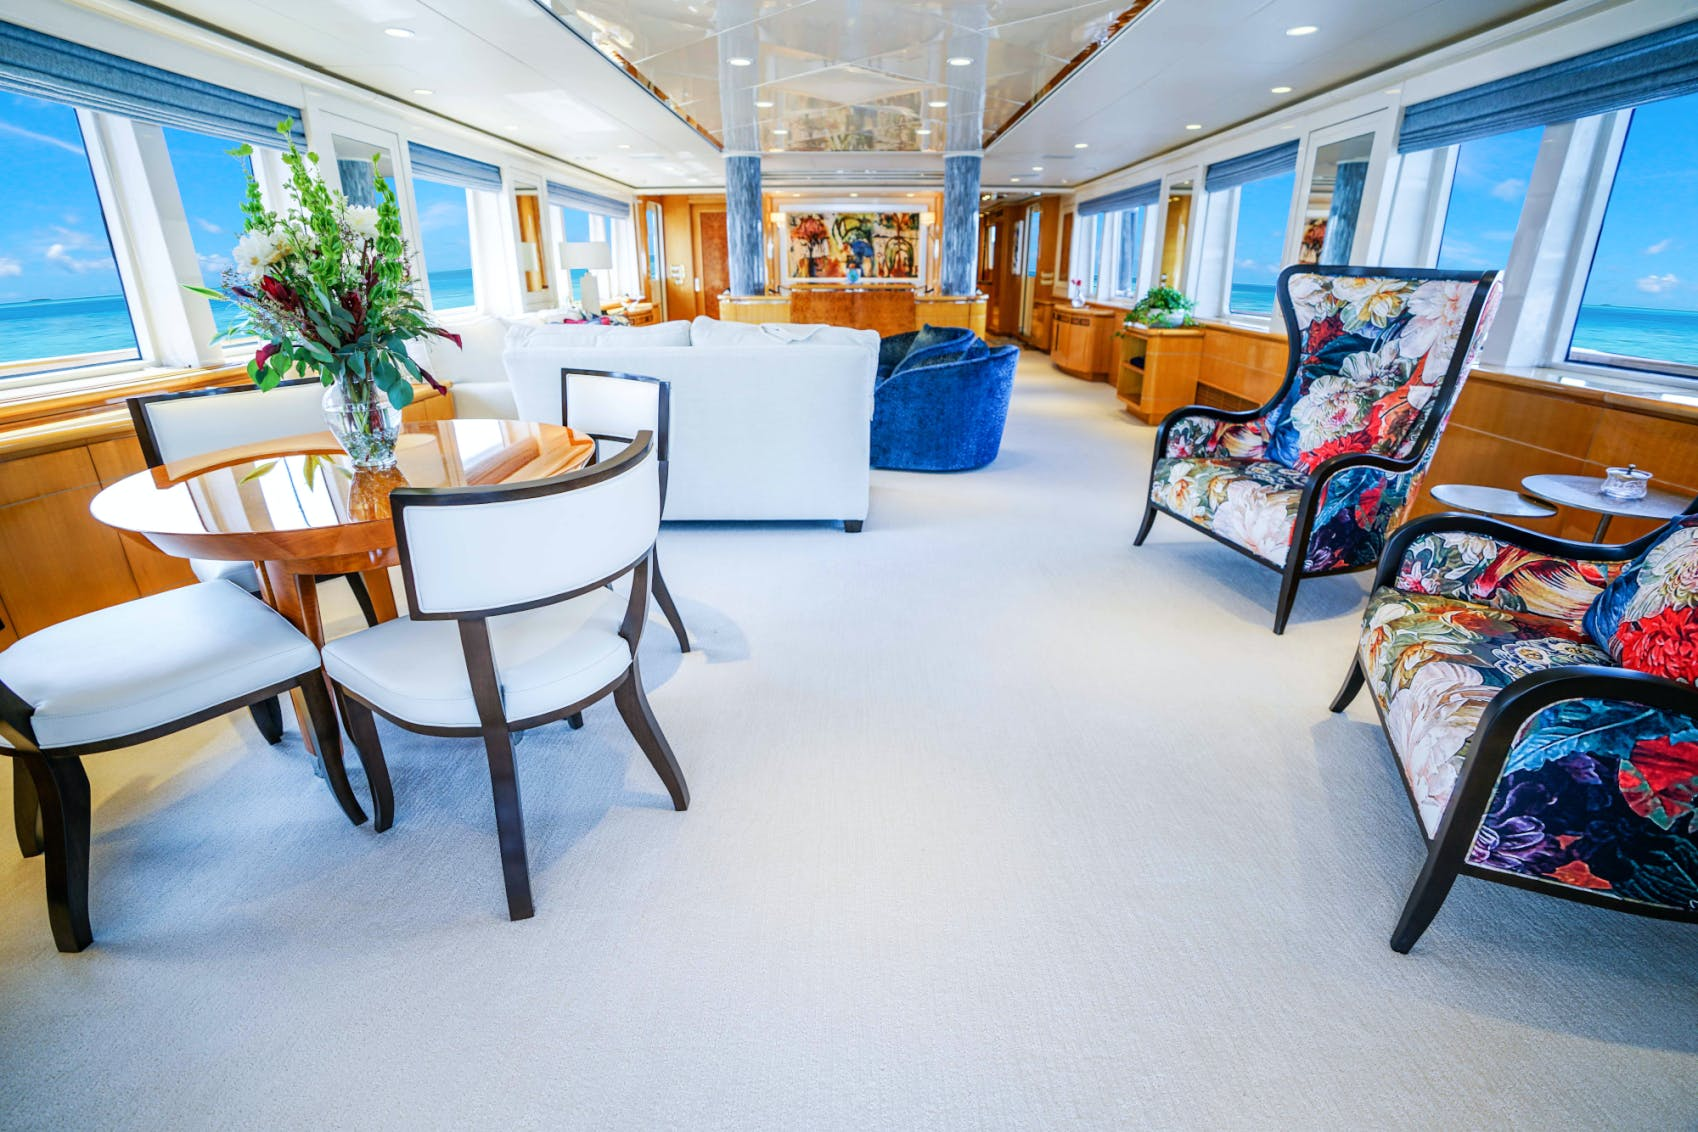 Seasonal Rates for WONDERLAND Private Luxury Yacht For Charter